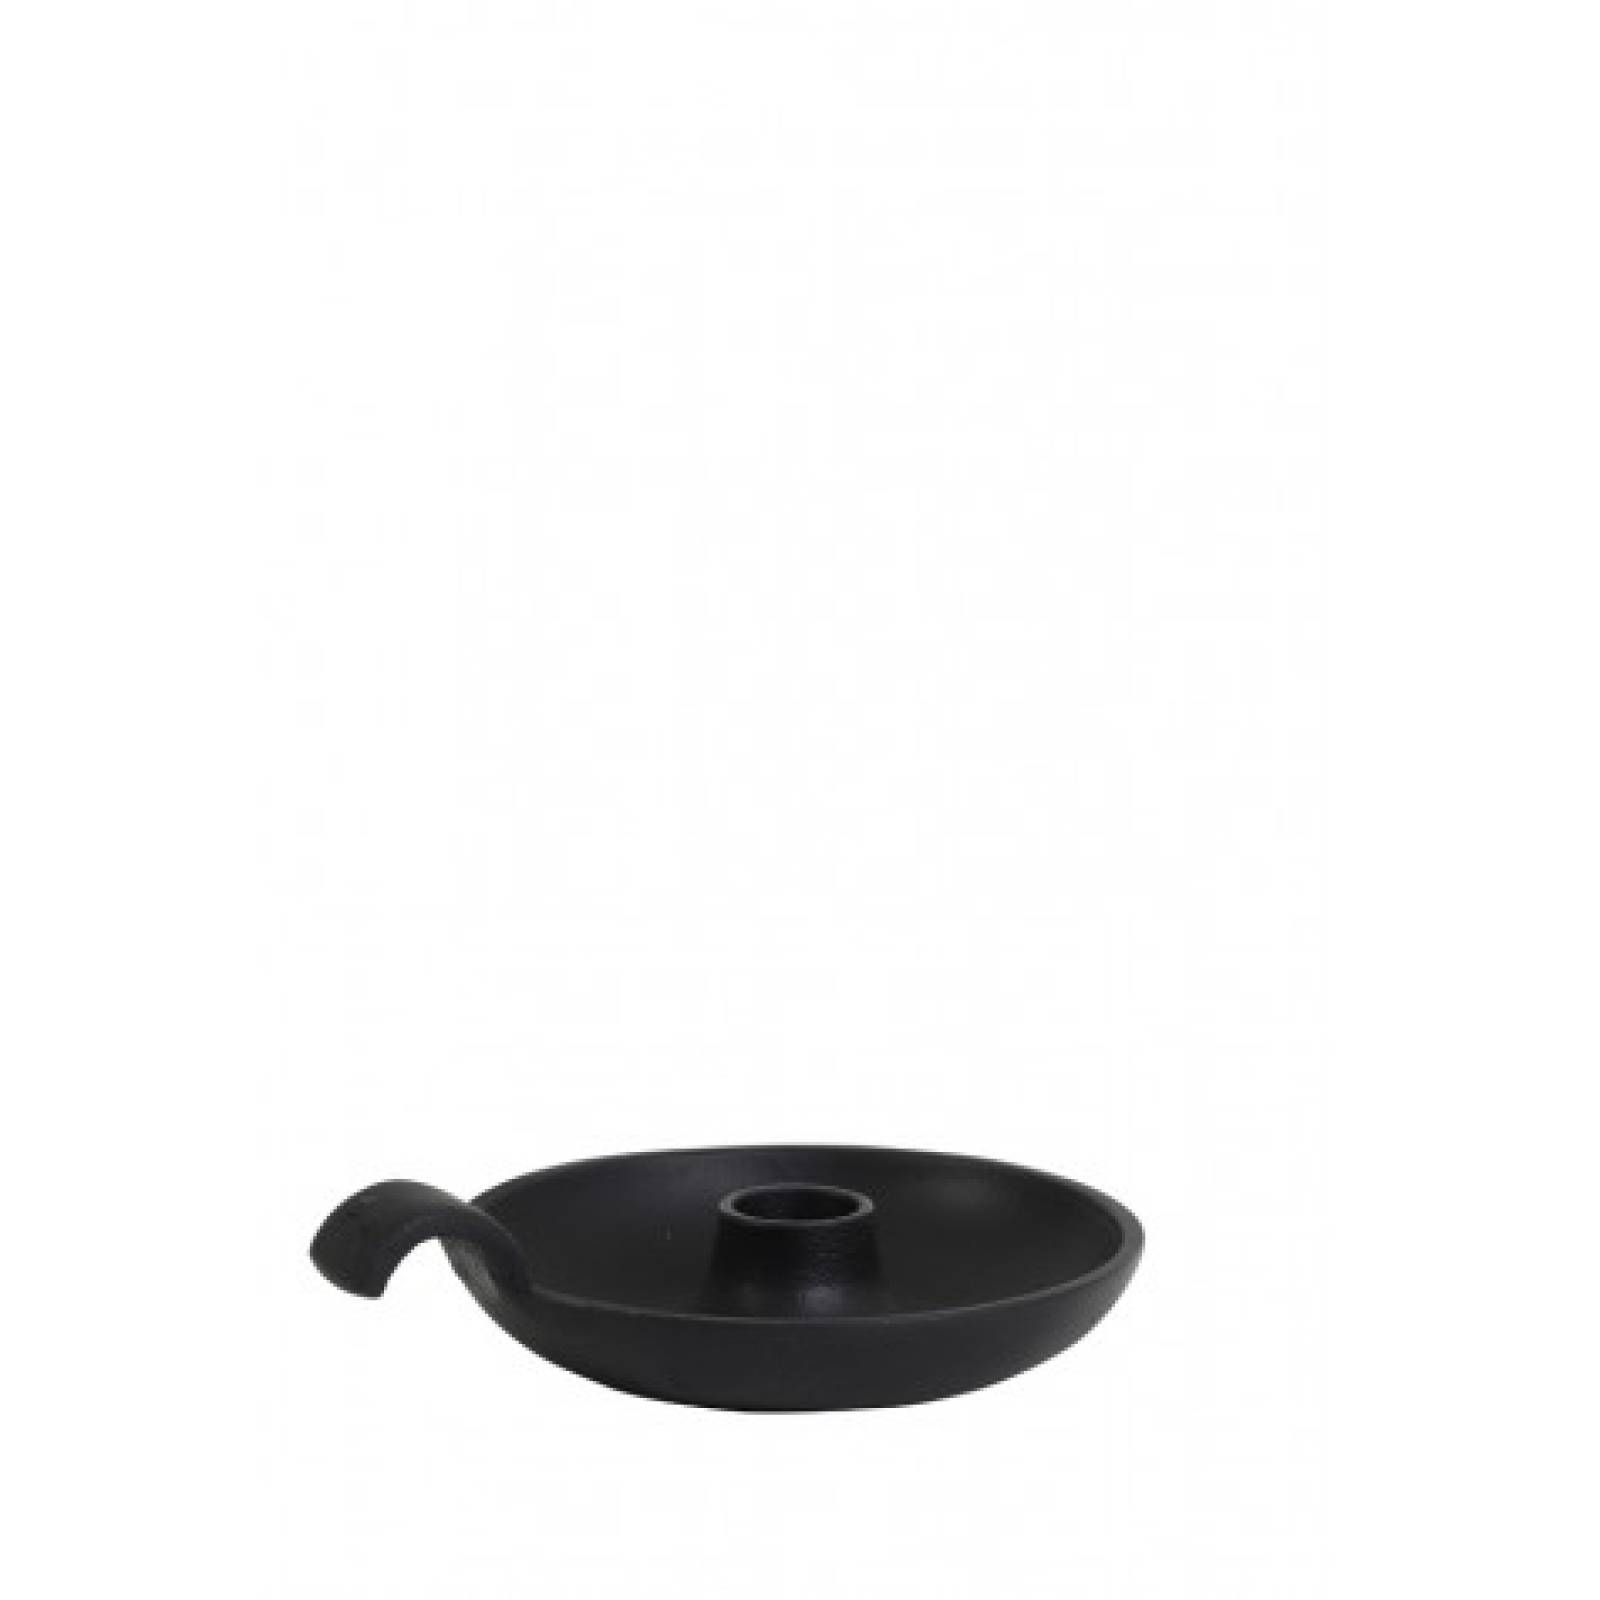 Metal Candleholder Dish With Handle